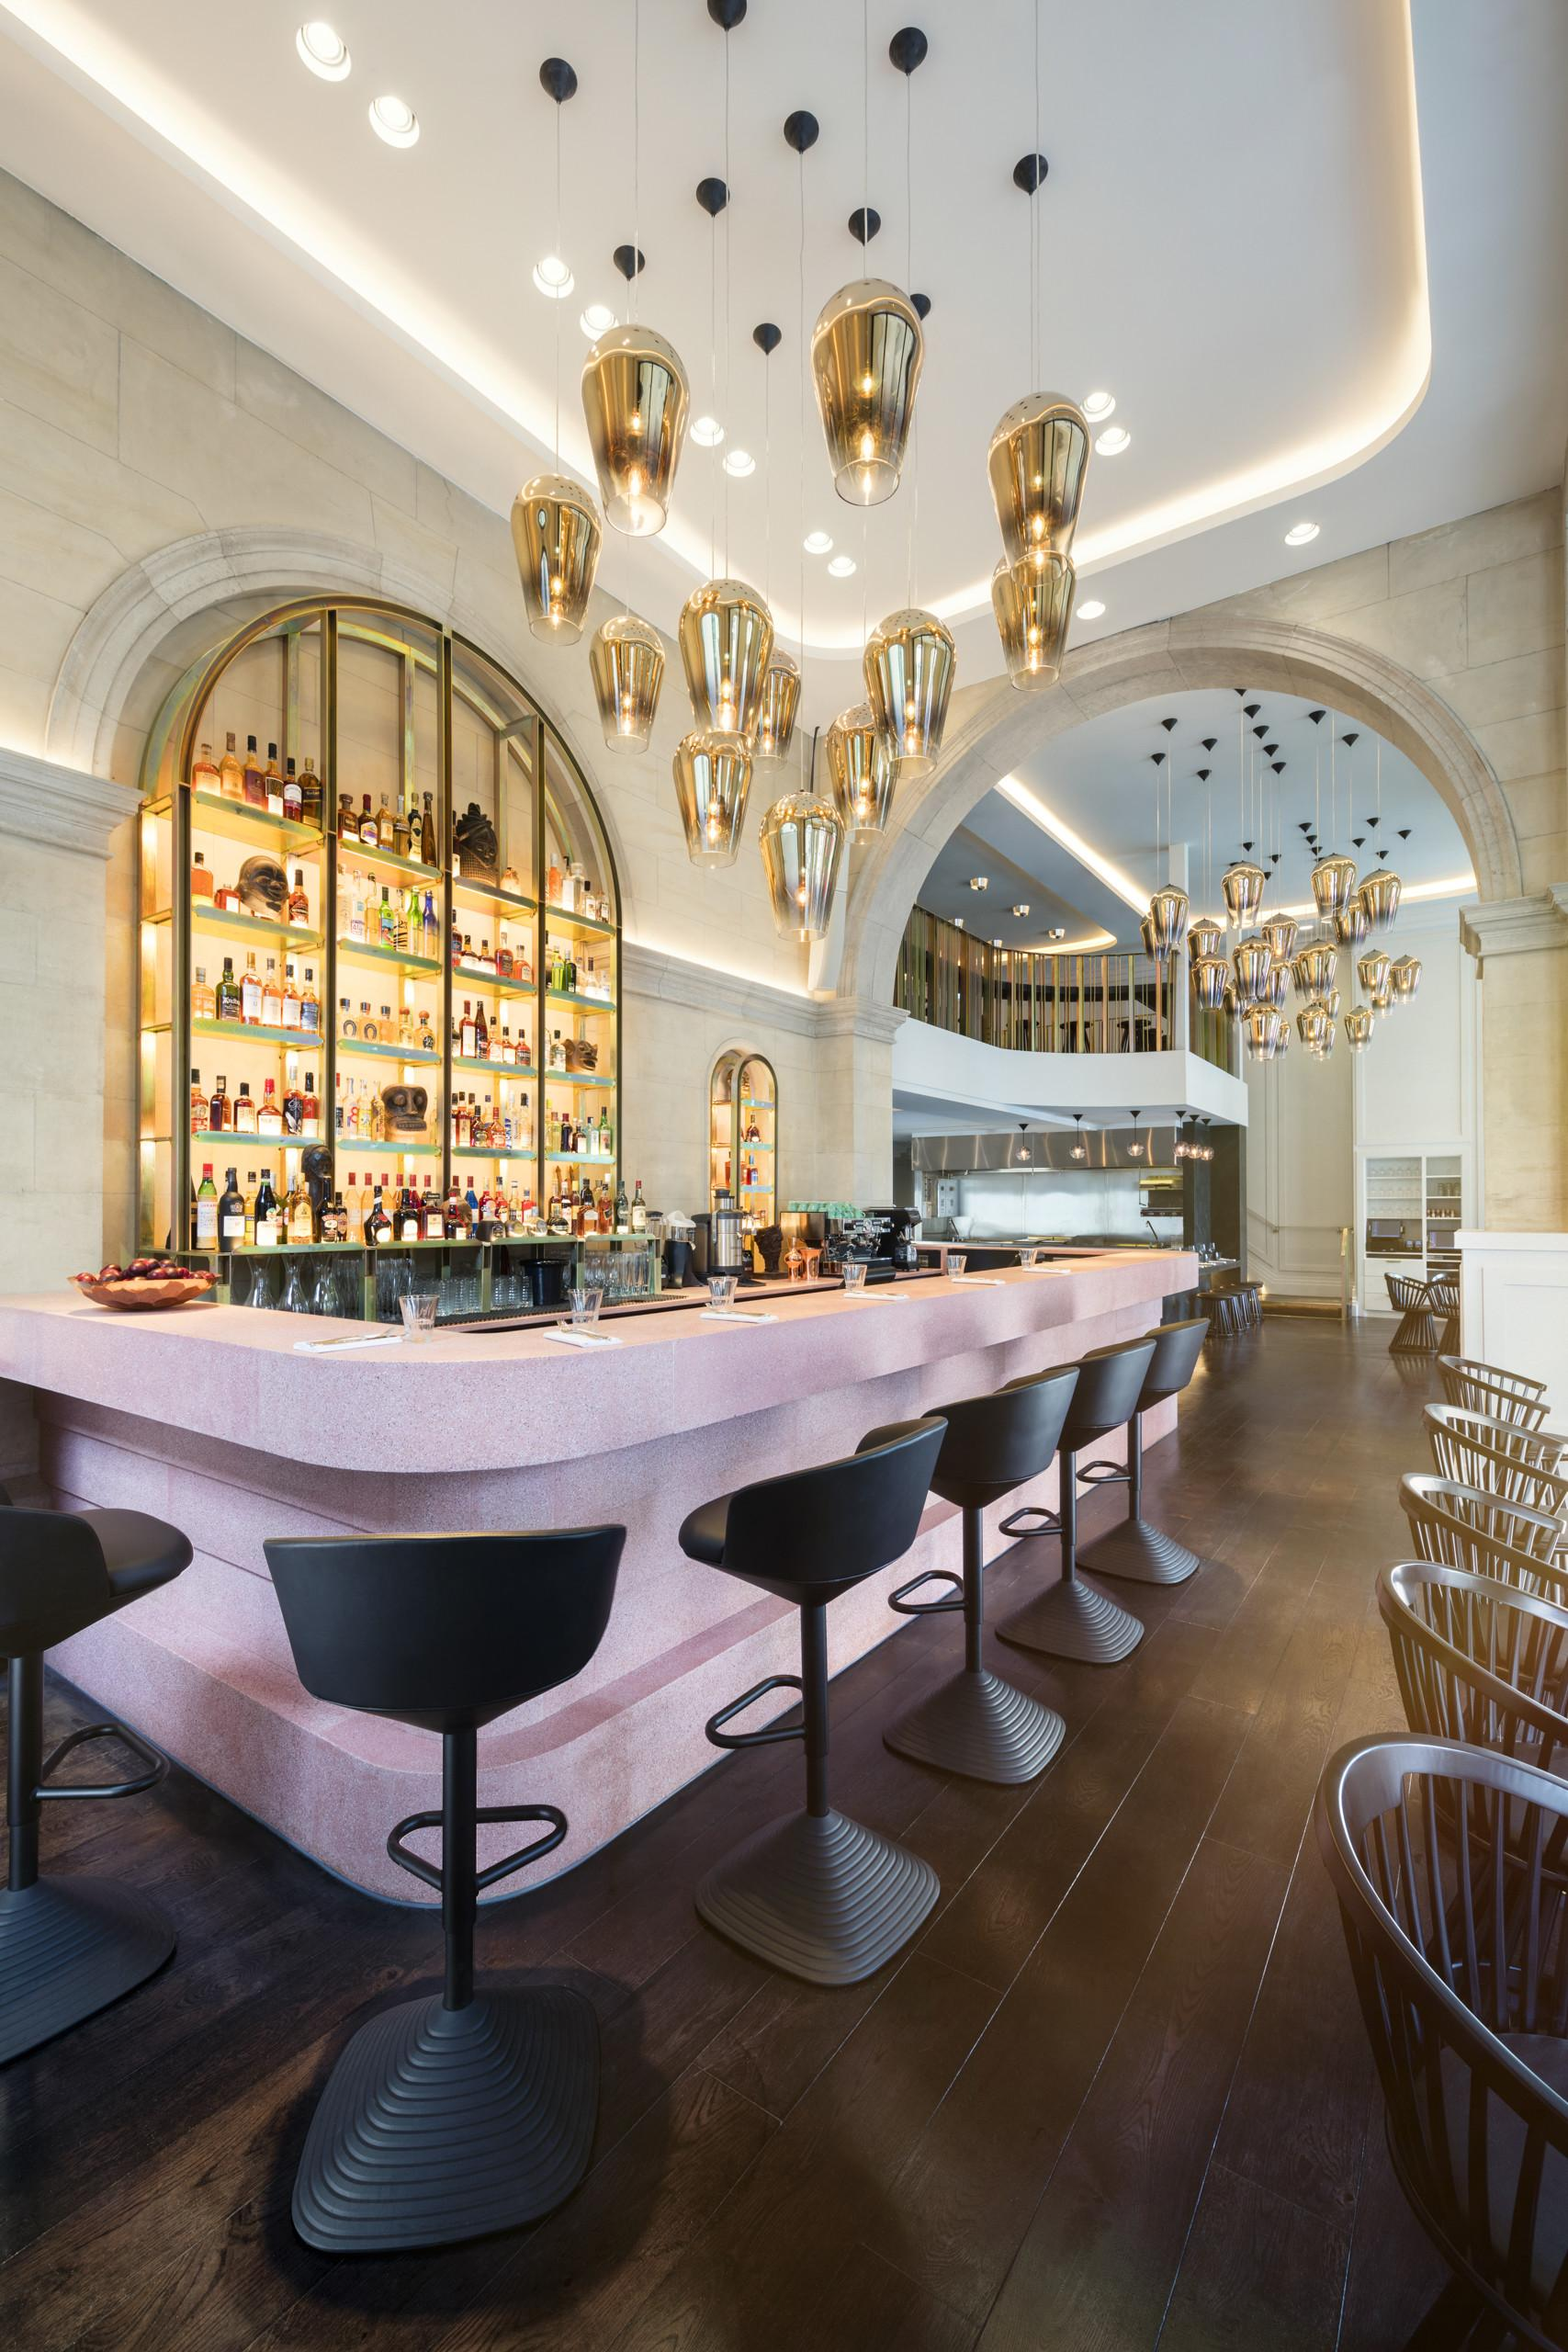 Tom Dixon Designs Interiors New London Restaurant